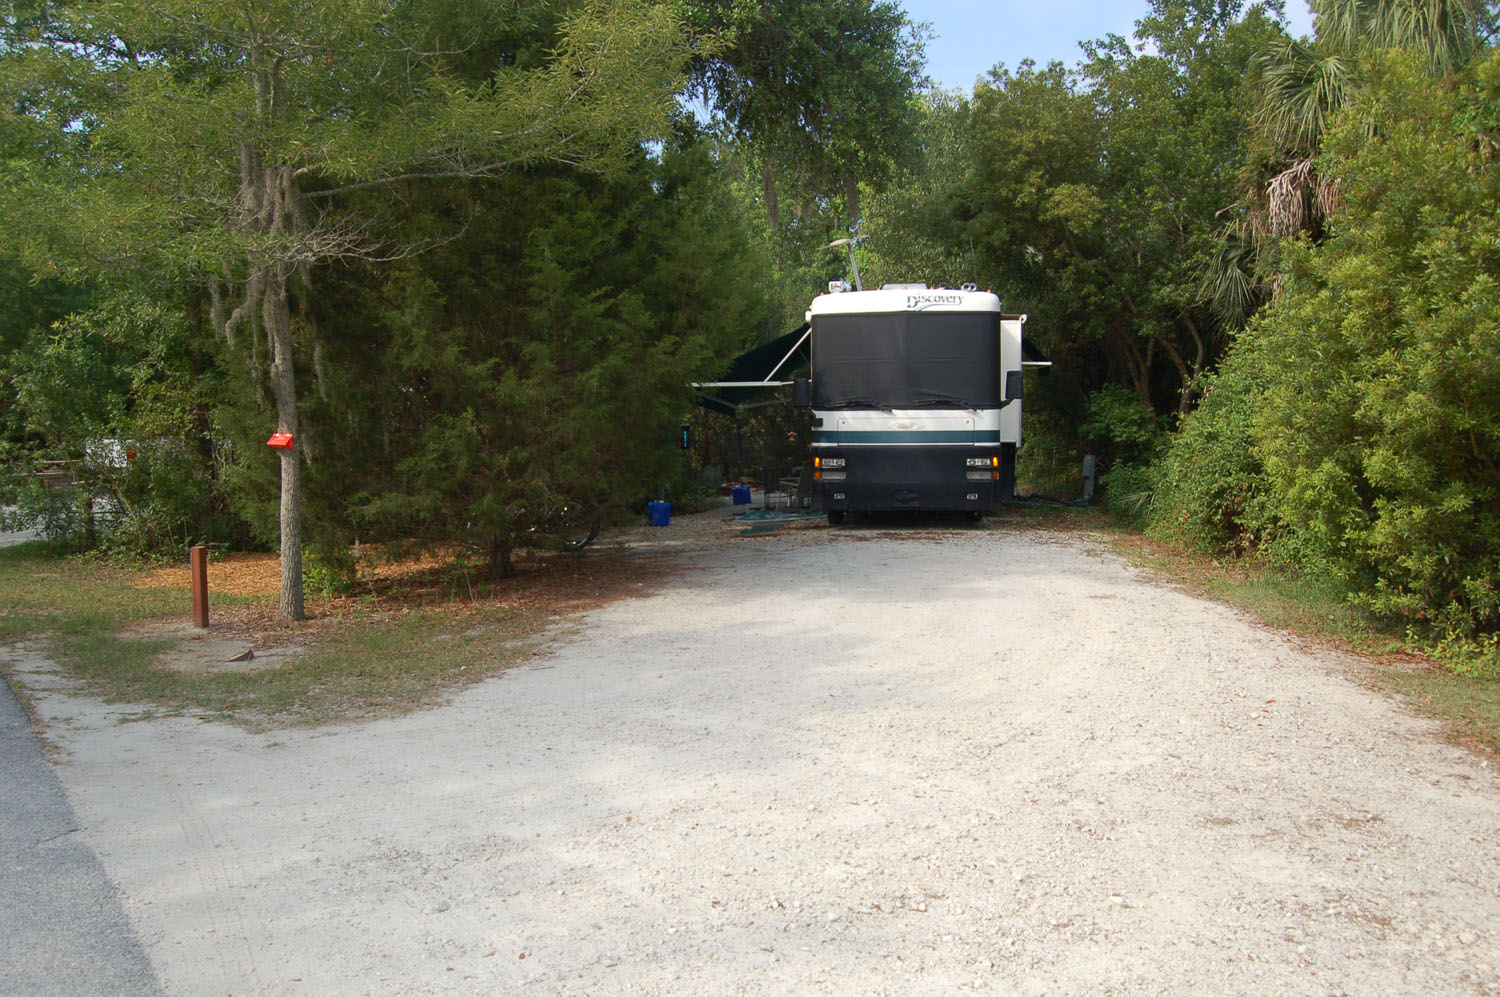 Image of campsite #26 at the Campground at James Island County Park